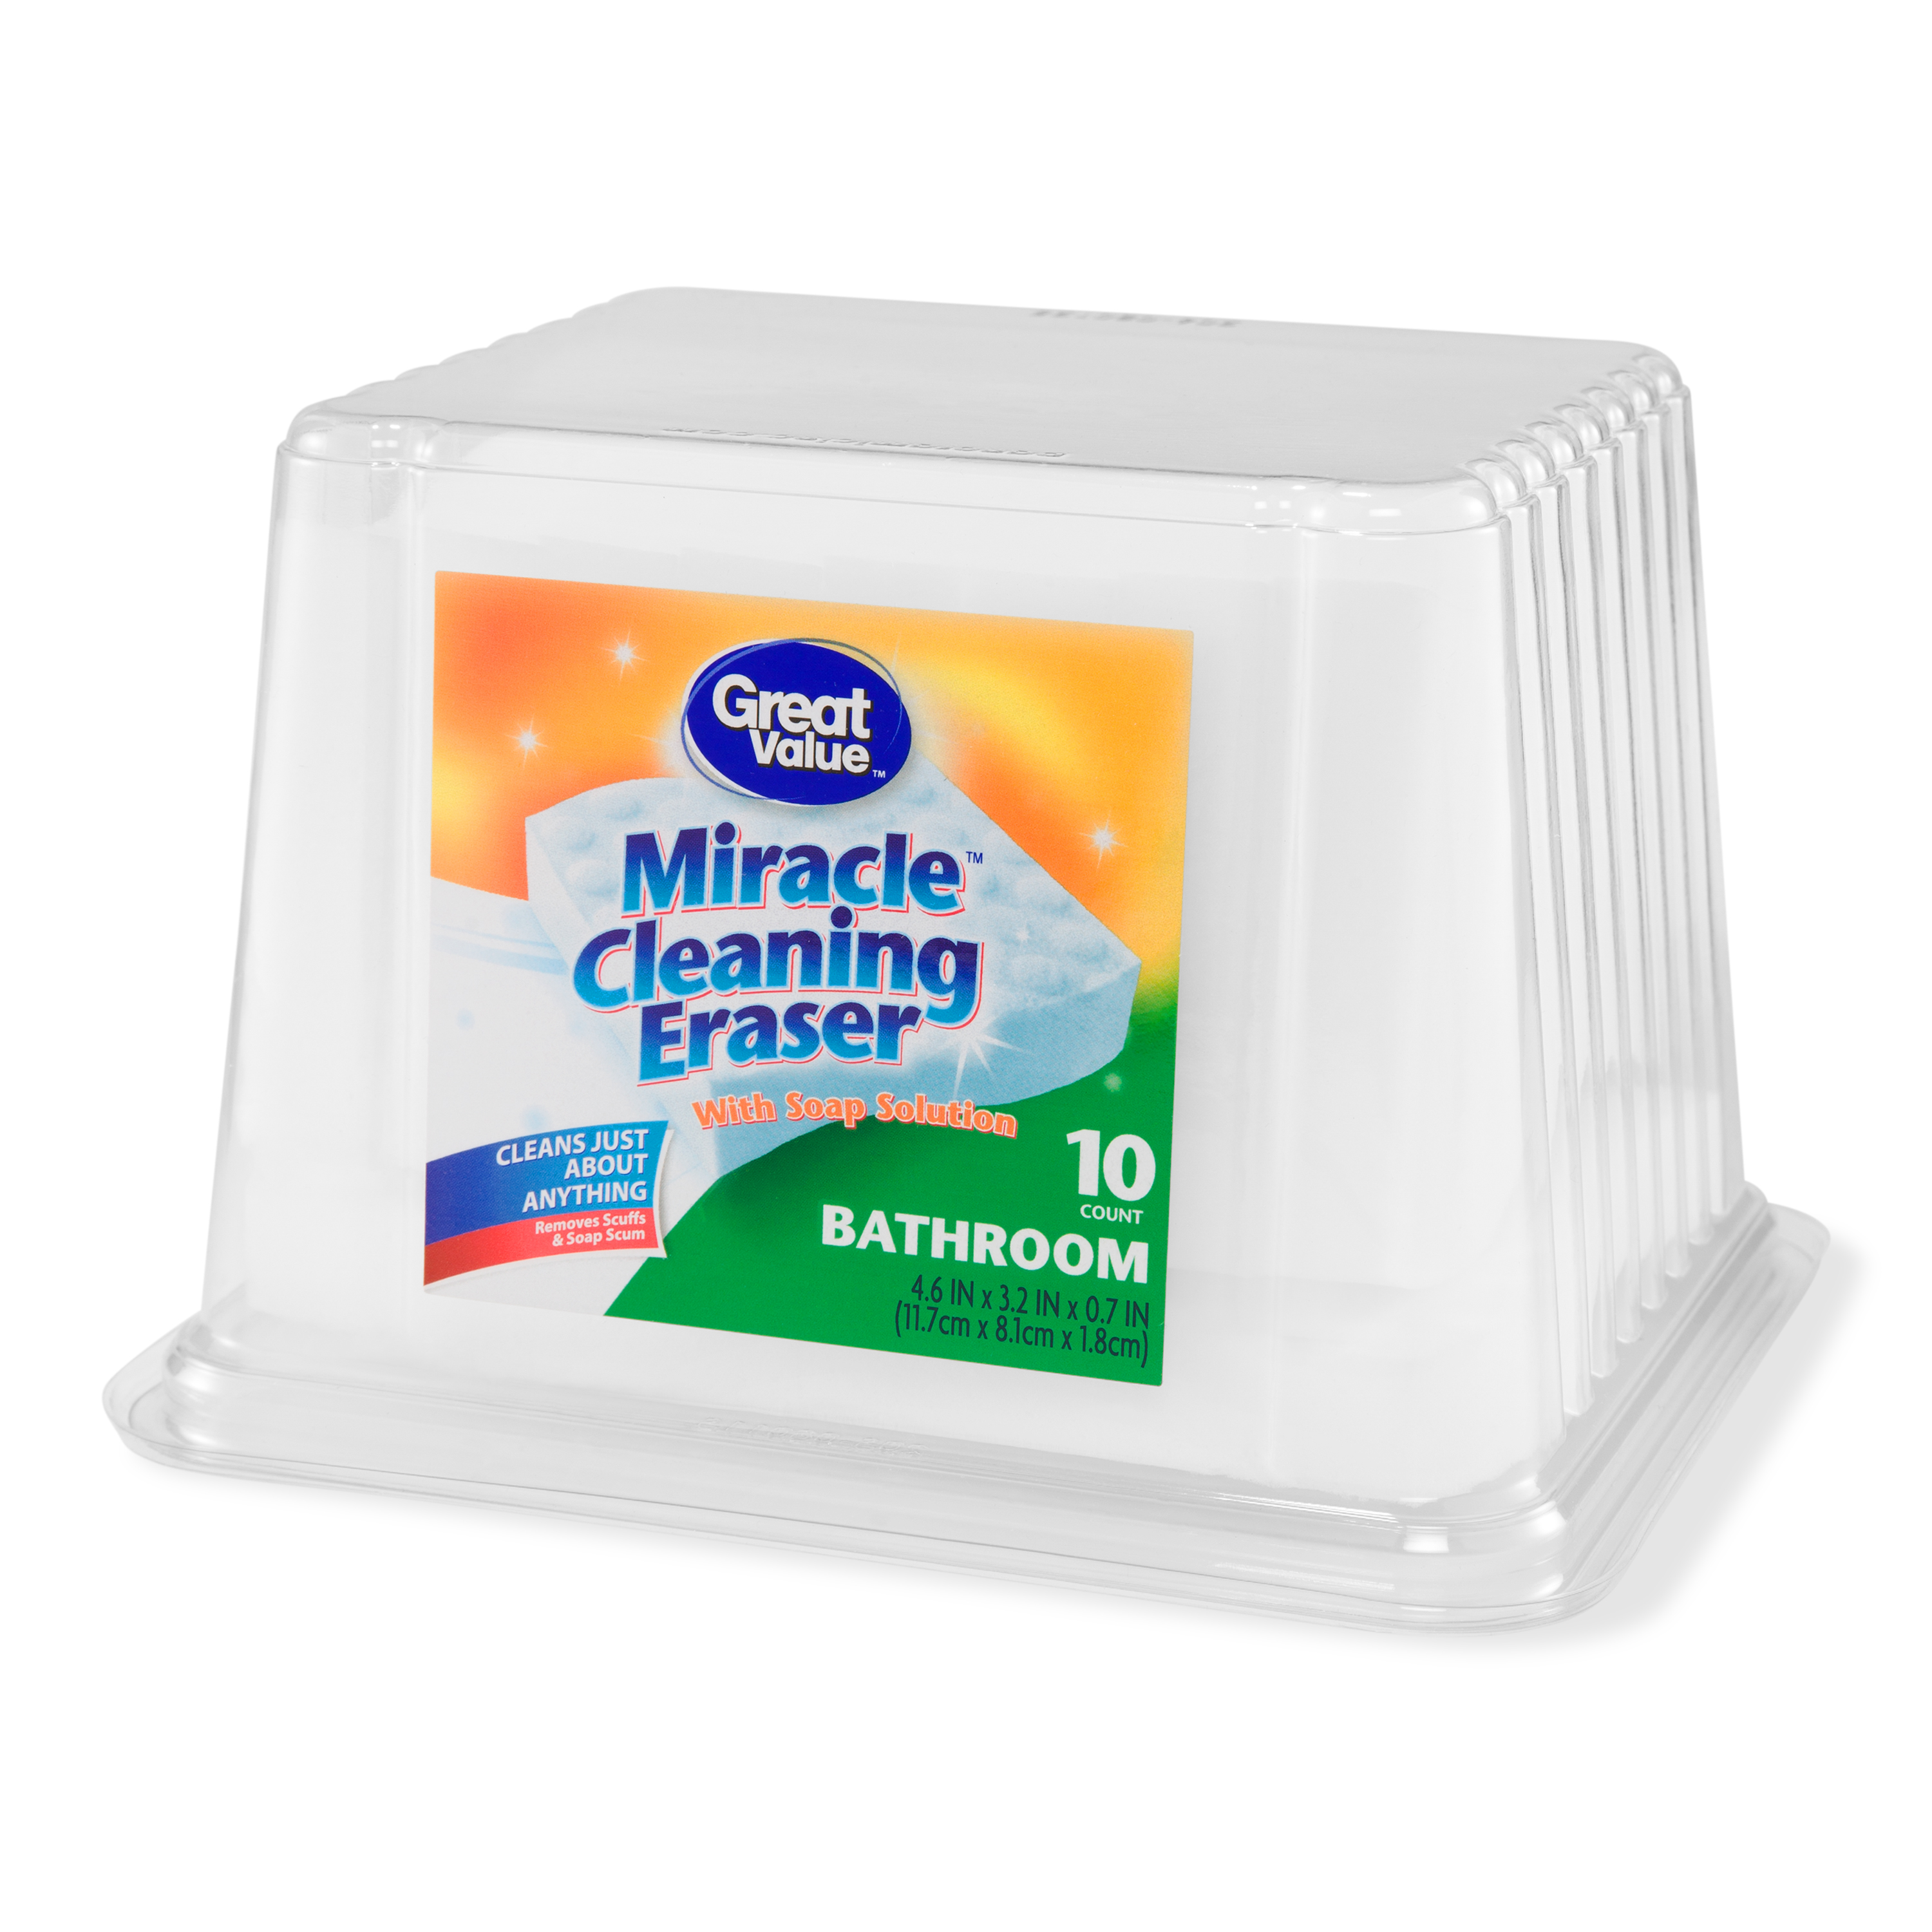 Great Value Miracle Cleaning Erasers with Soap Solution, Bathroom, 10 Count